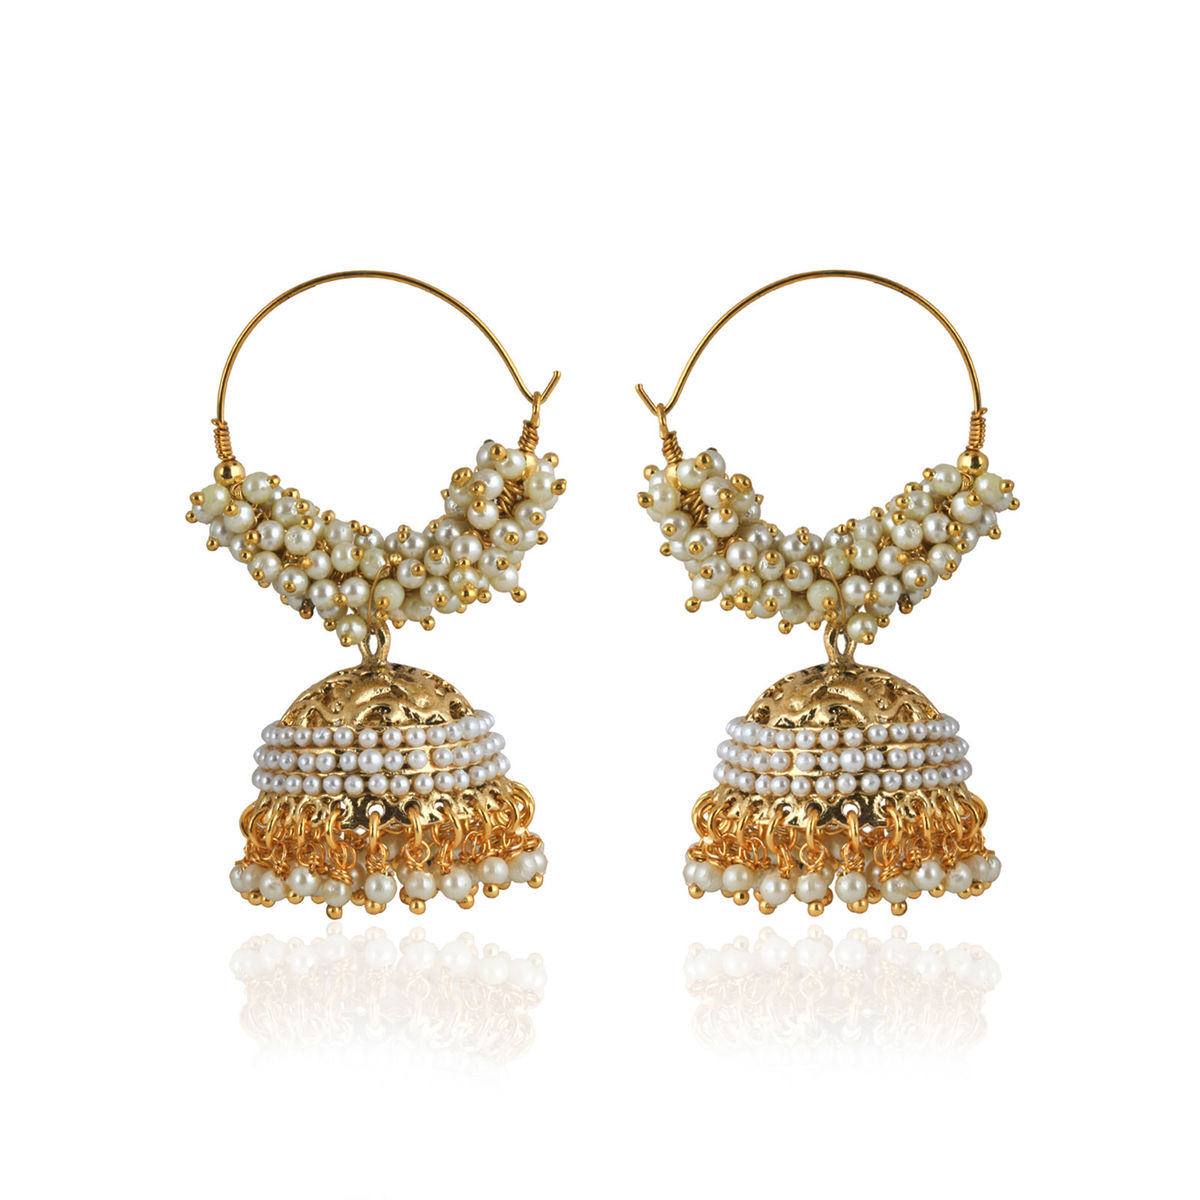 Pearl Bali Jhumka earrings